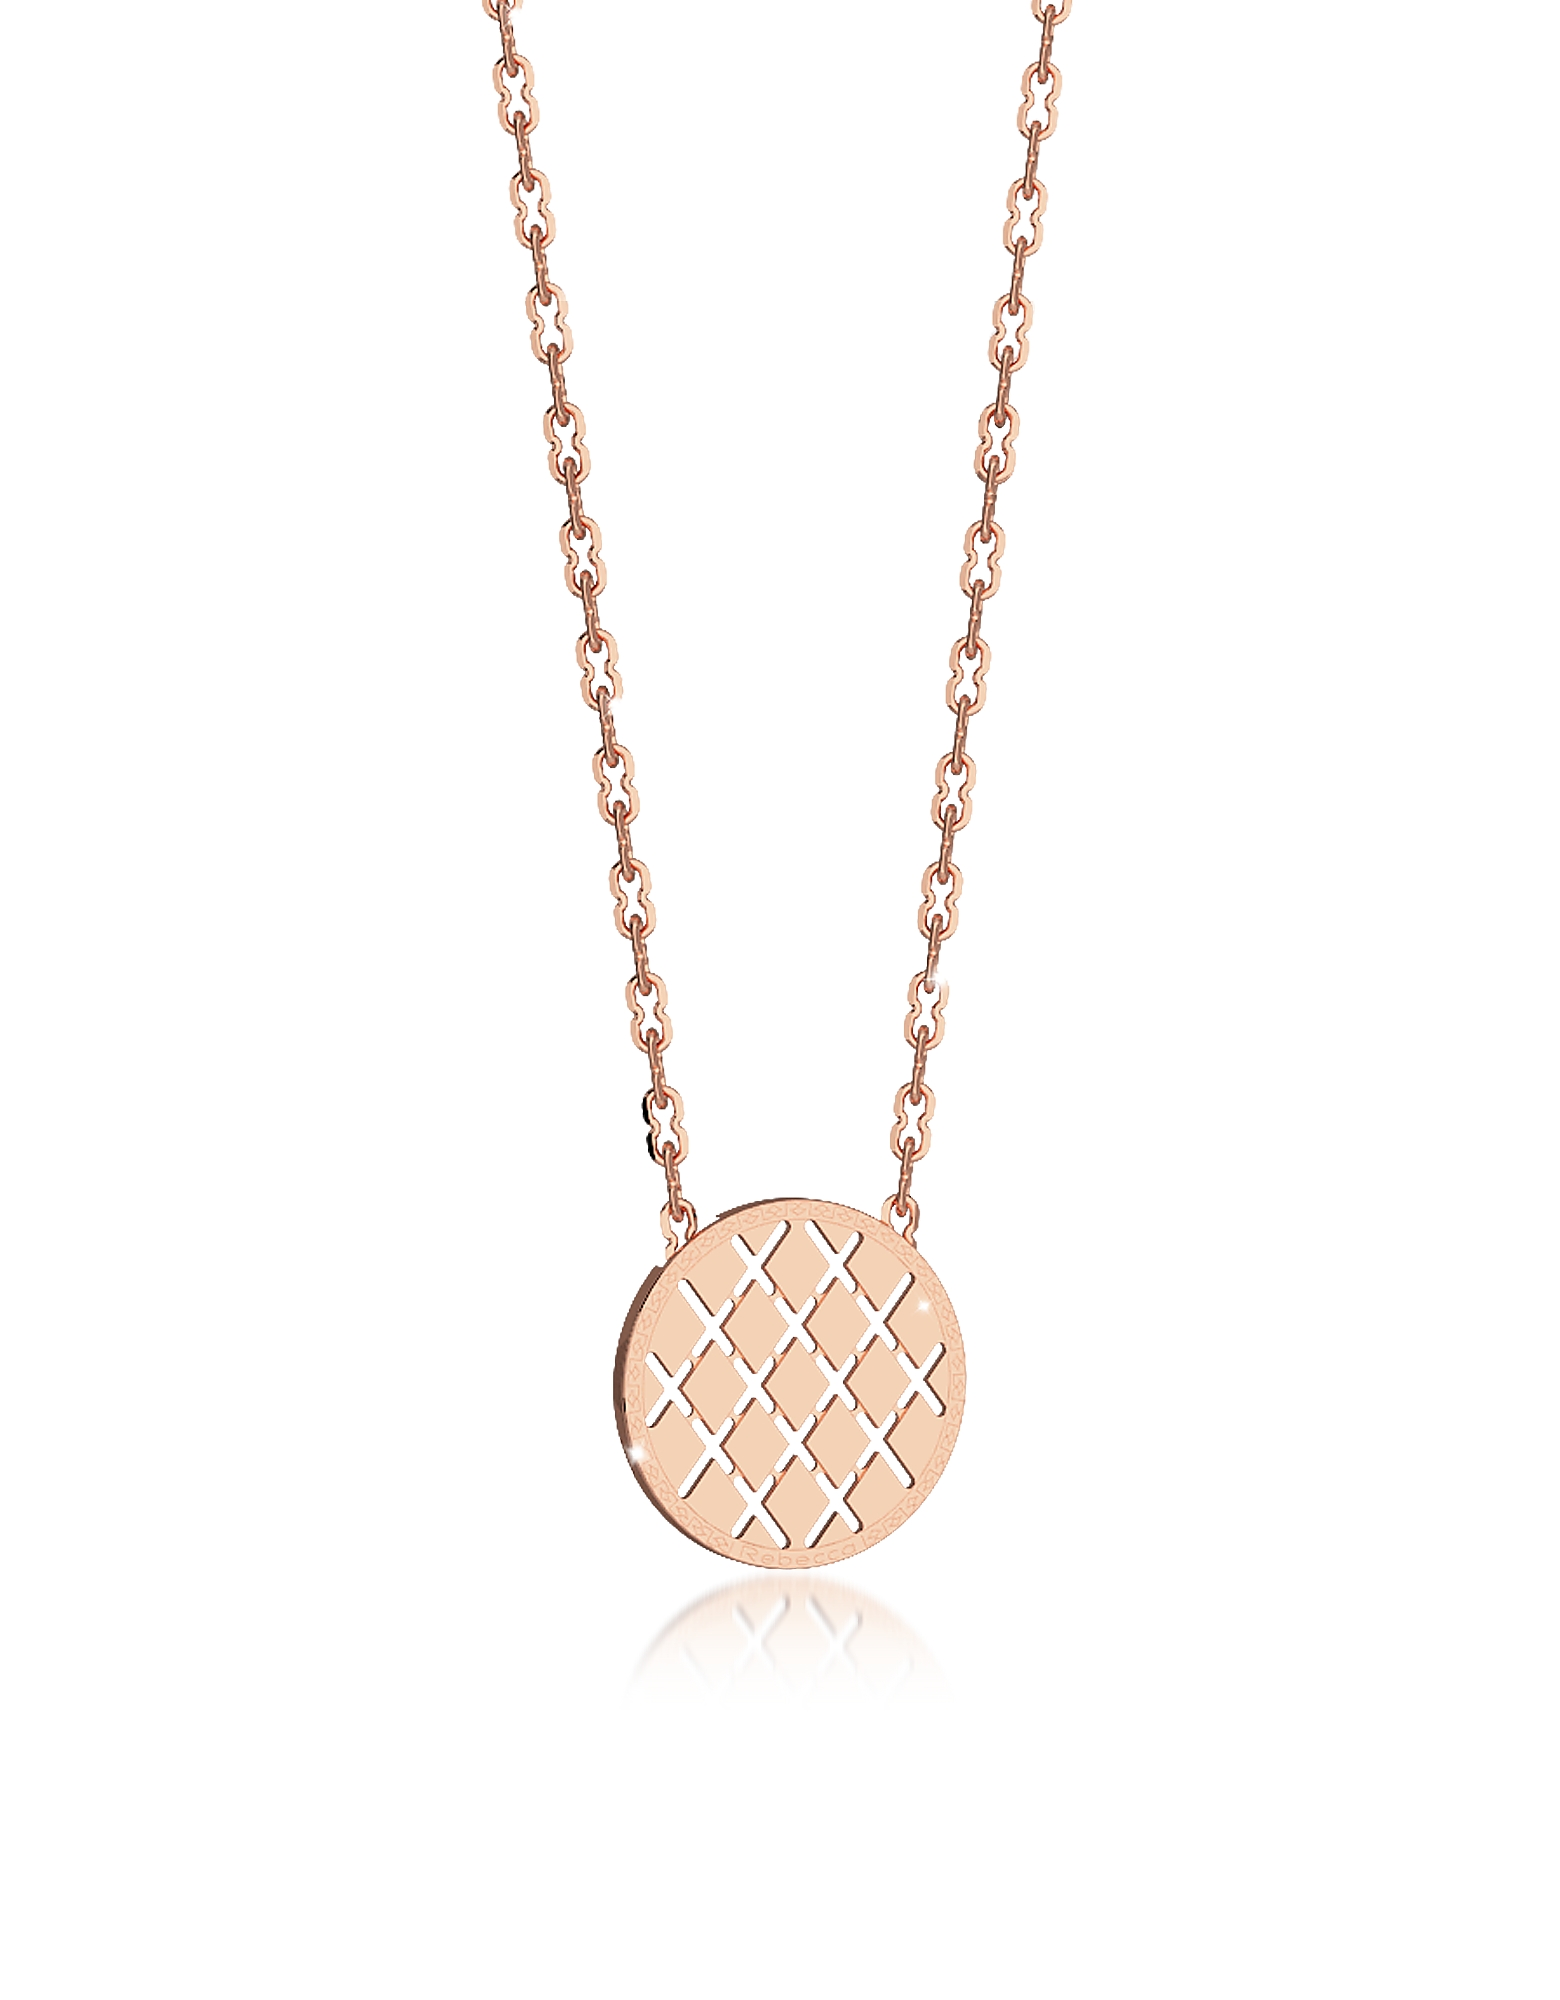 Rebecca Necklaces, Melrose Rose Gold Over Bronze Necklace w/Round Charm